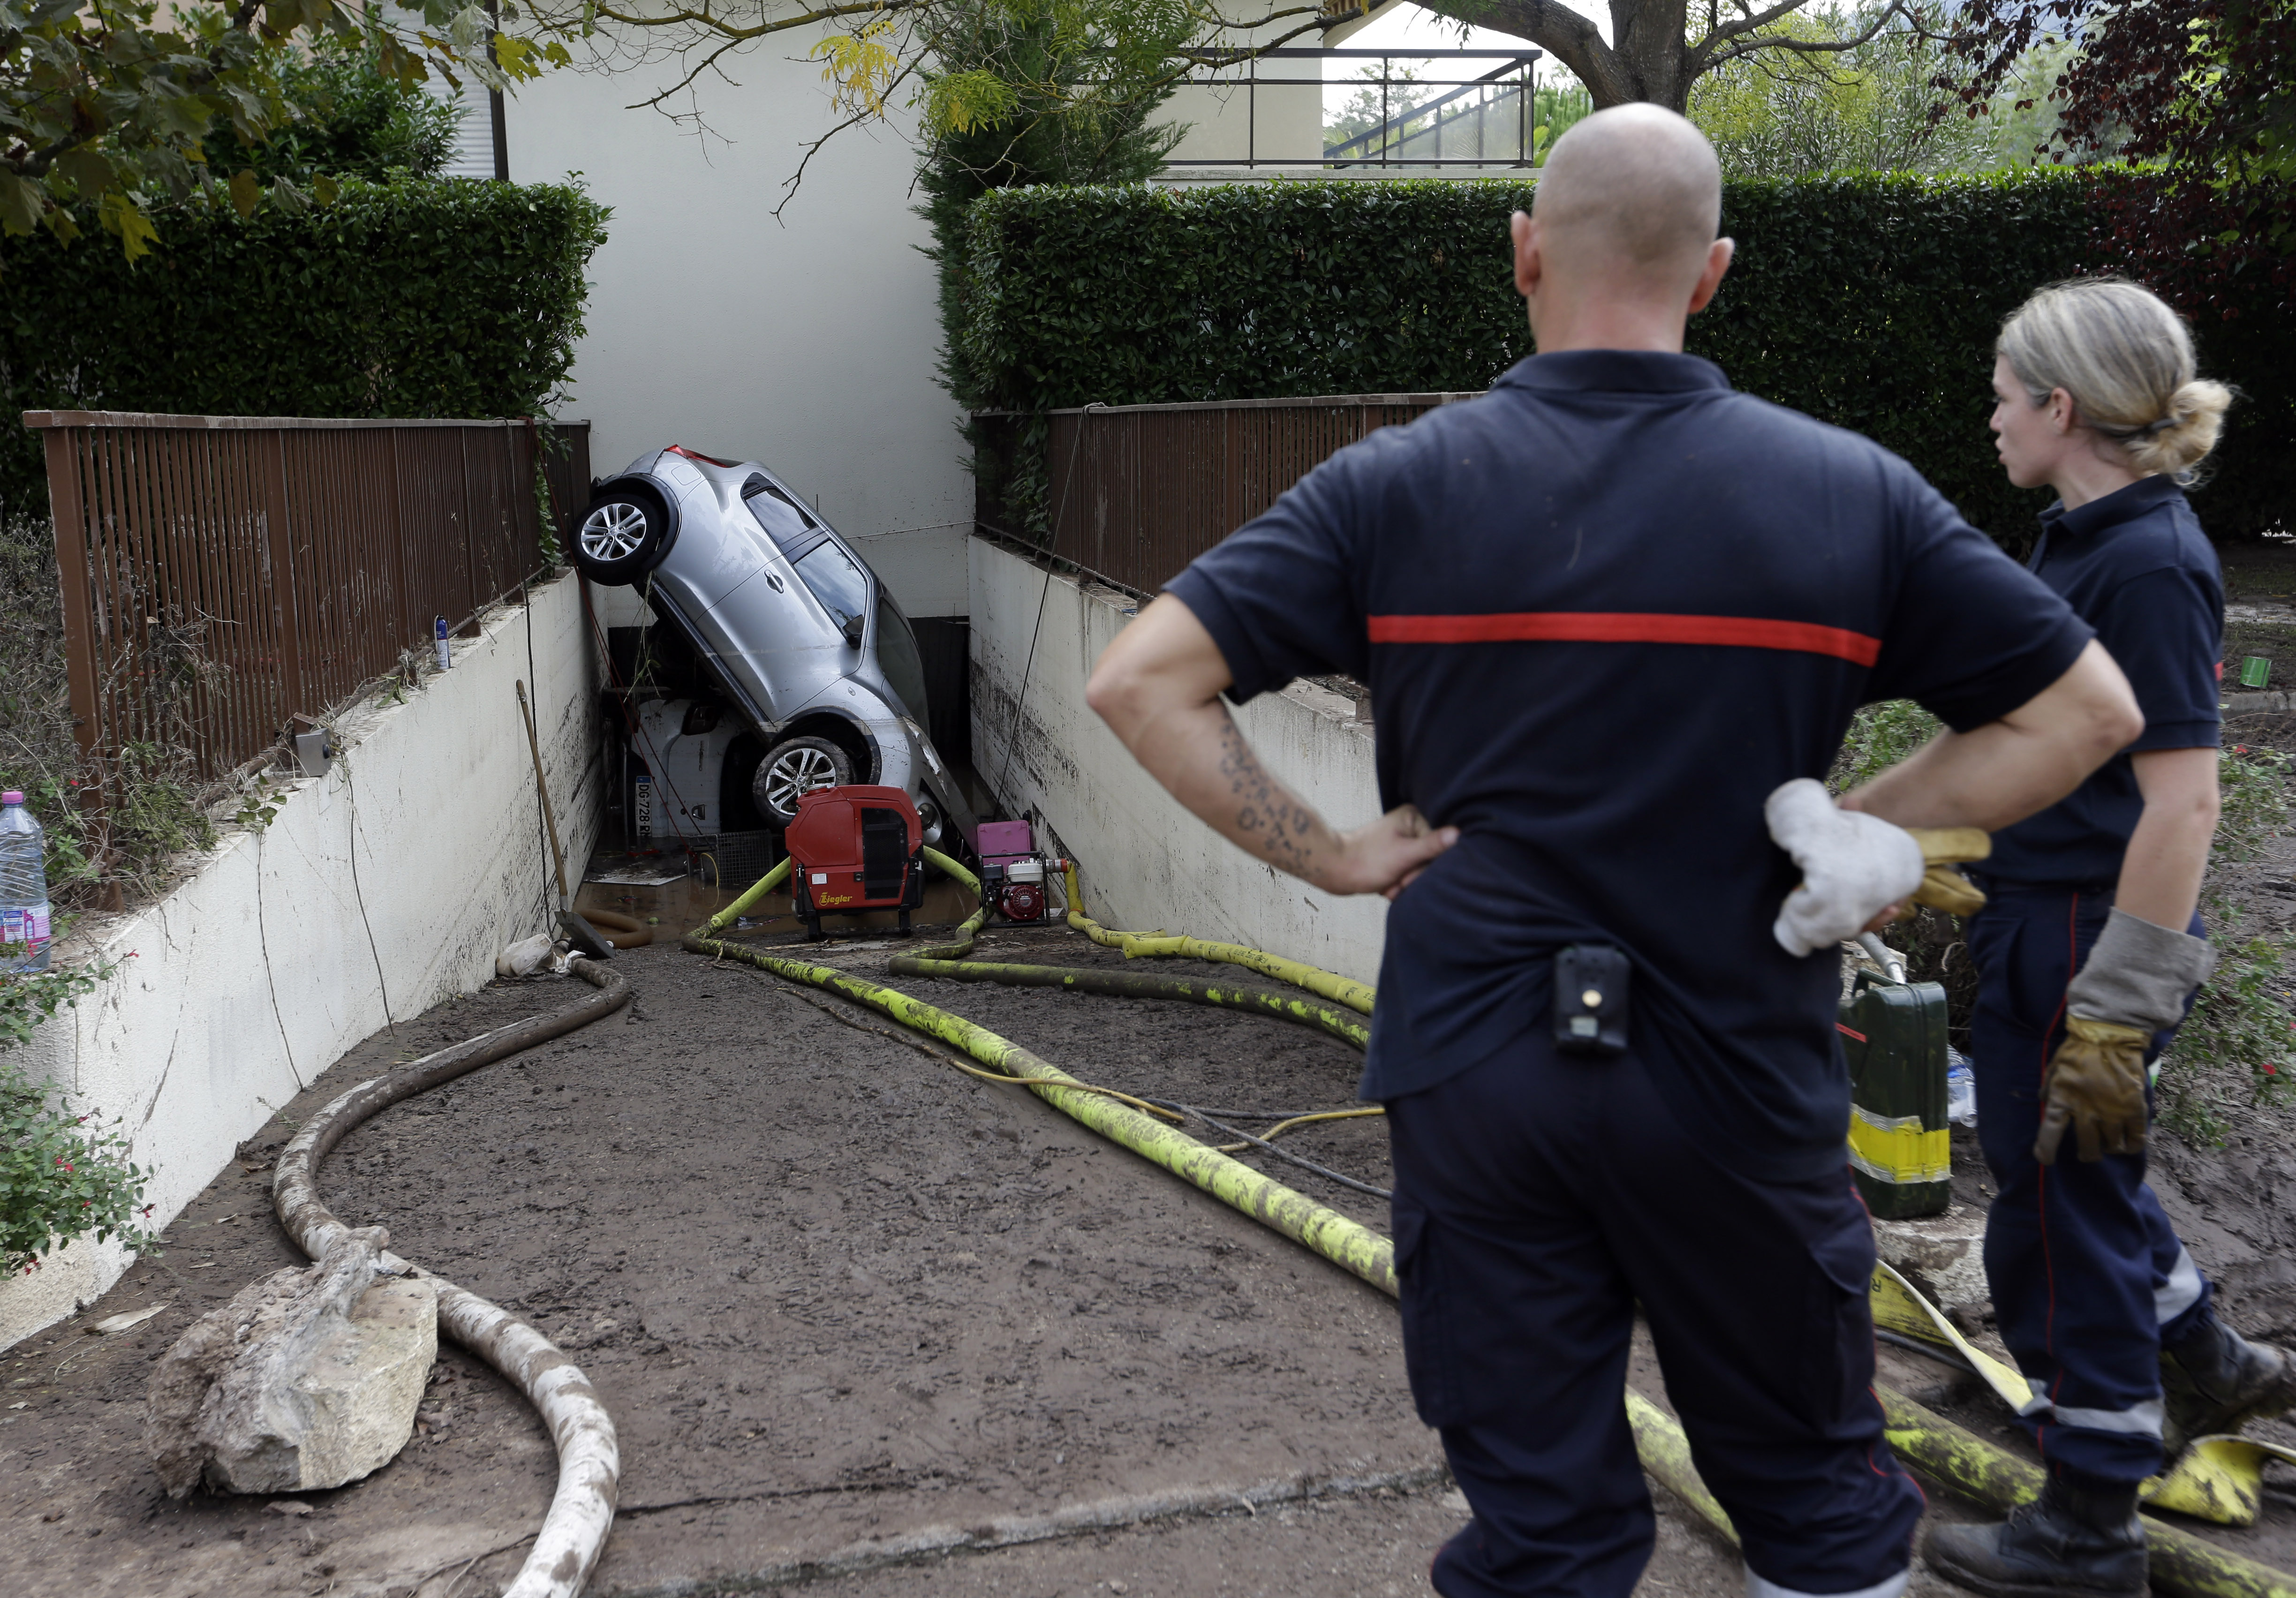 Rescue workers ponder a car stuck in the entrance of an underground garage, in Mandelieu la Napoule, southern France, Oct. 5, 2015.